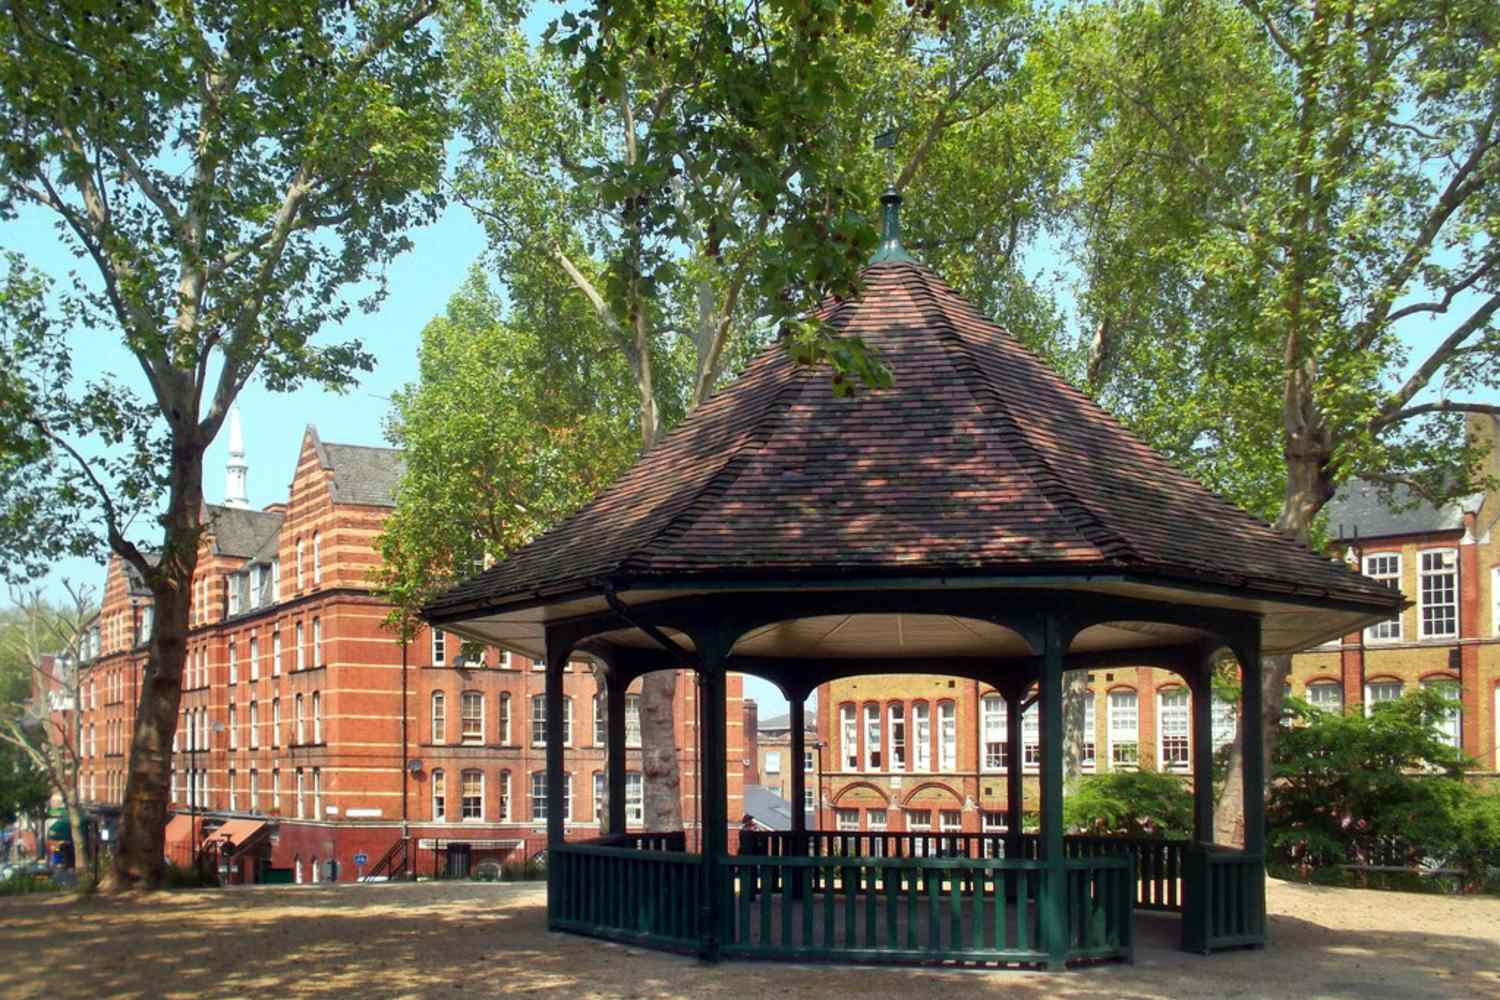 The bandstand in Arnold Circus in the Boundary Estate